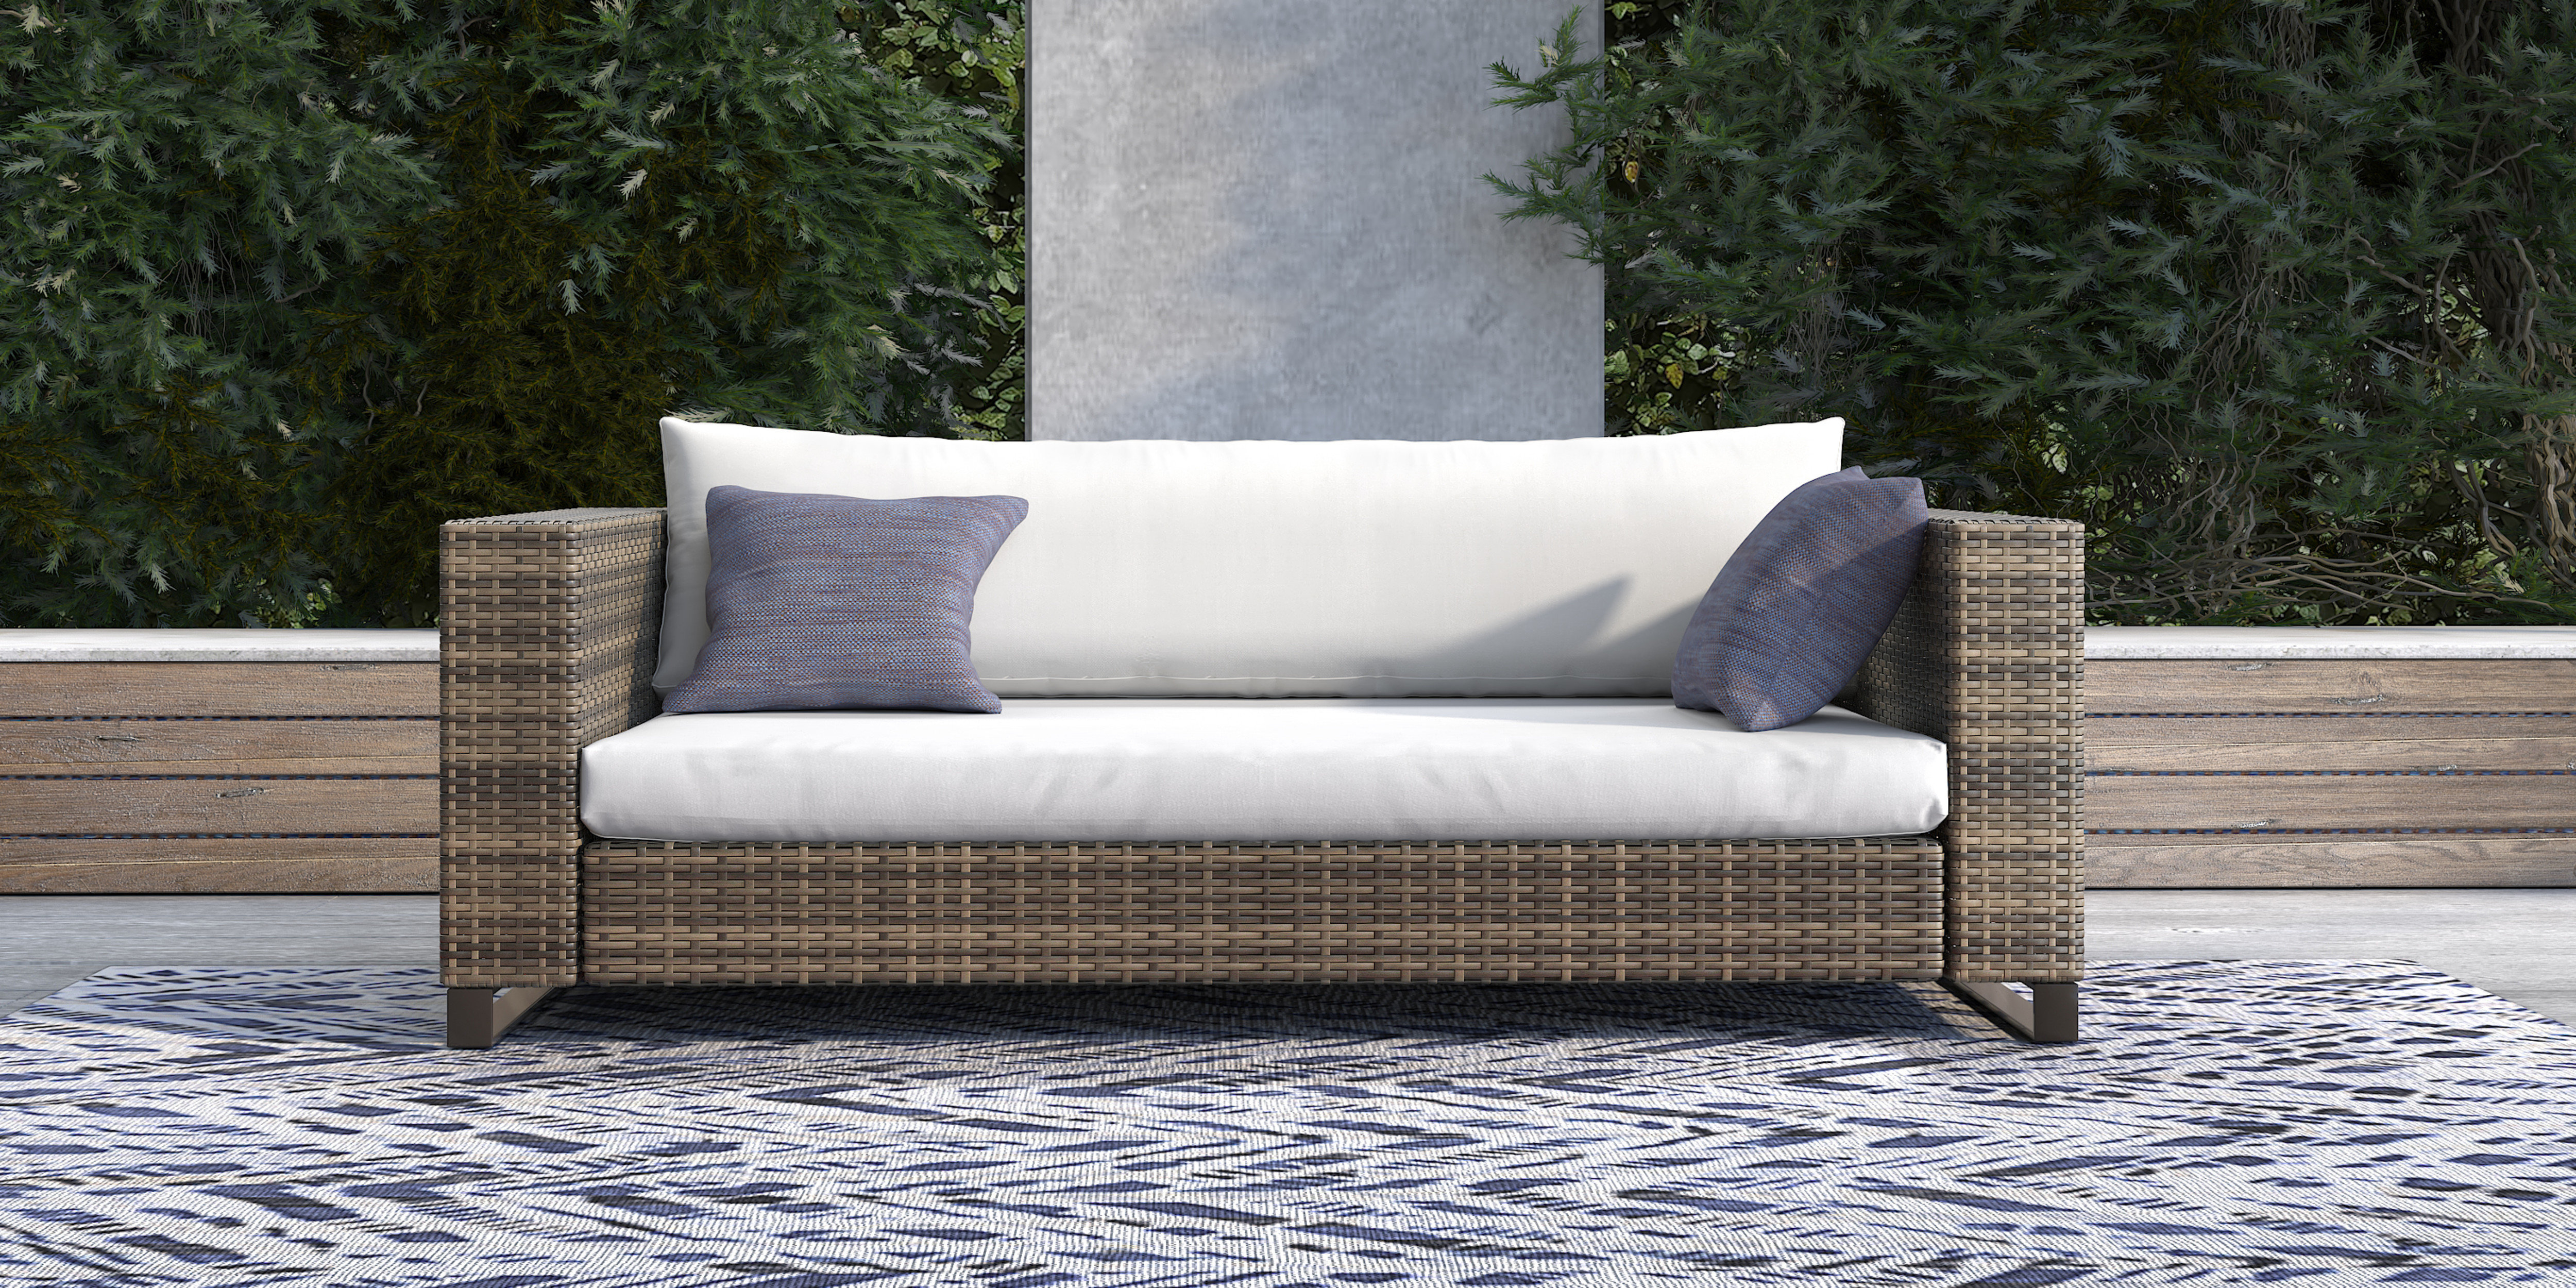 Huddleson Loveseats With Cushion Inside Most Up To Date Oceanside Outdoor Wicker Loveseat With Cushions (View 9 of 20)